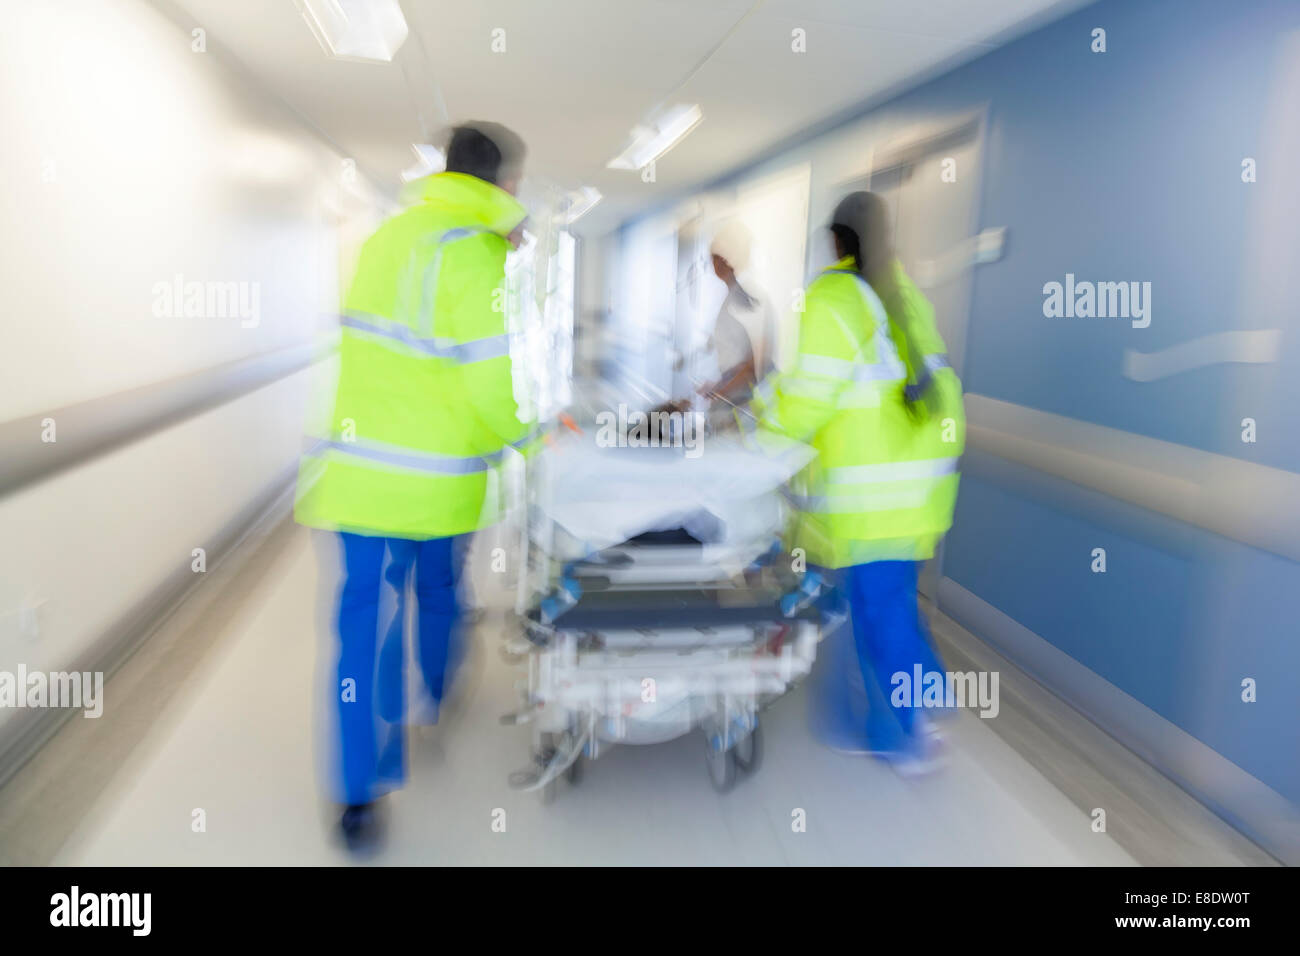 Motion blurred photo of patient on stretcher gurney pushed at speed through hospital corridor by doctors paramedics - Stock Image